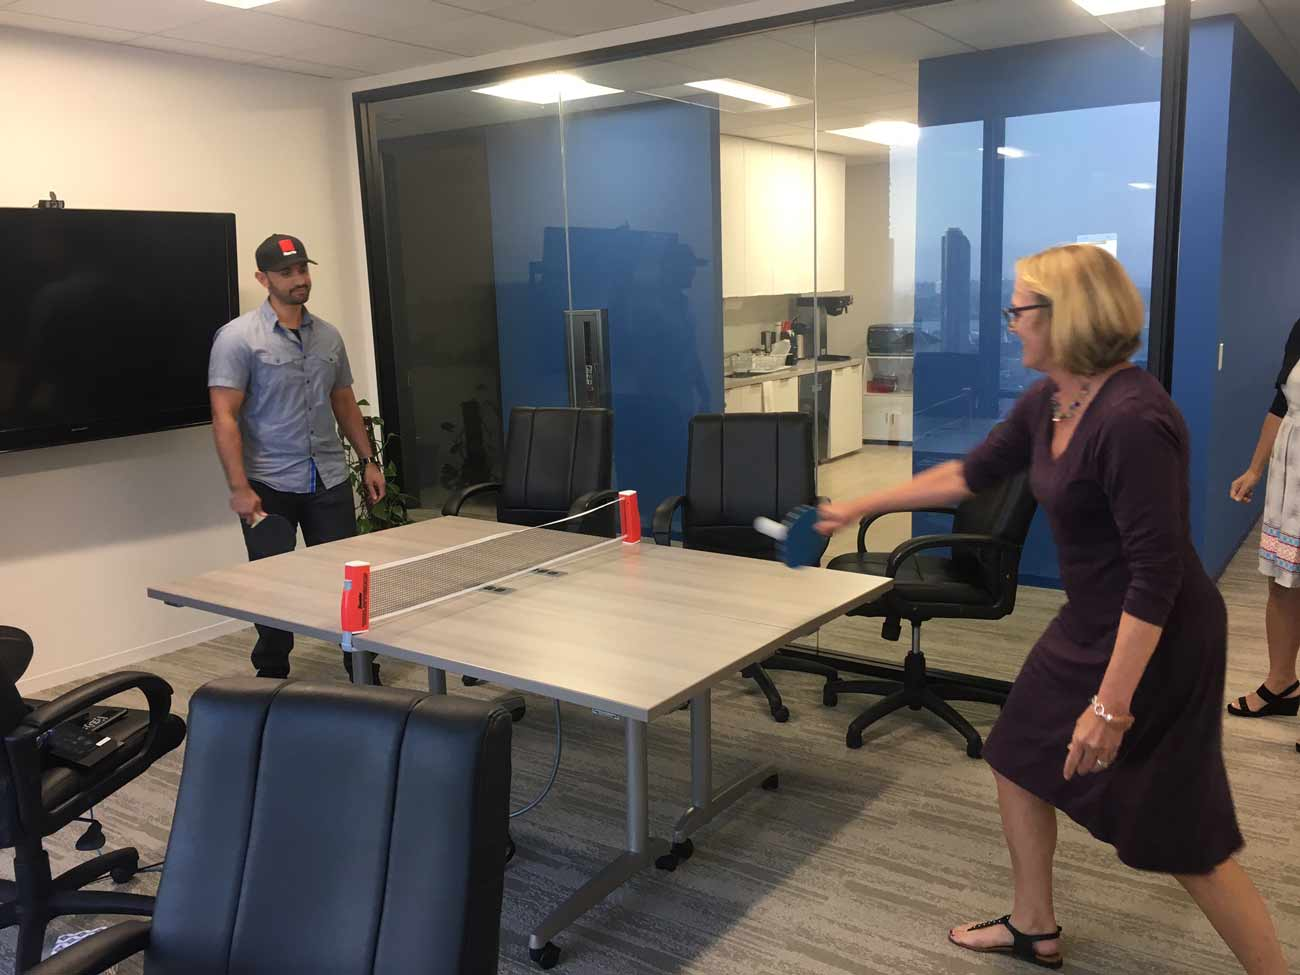 Our CEO Lisa takes on a challenger in an impromptu table tennis game.